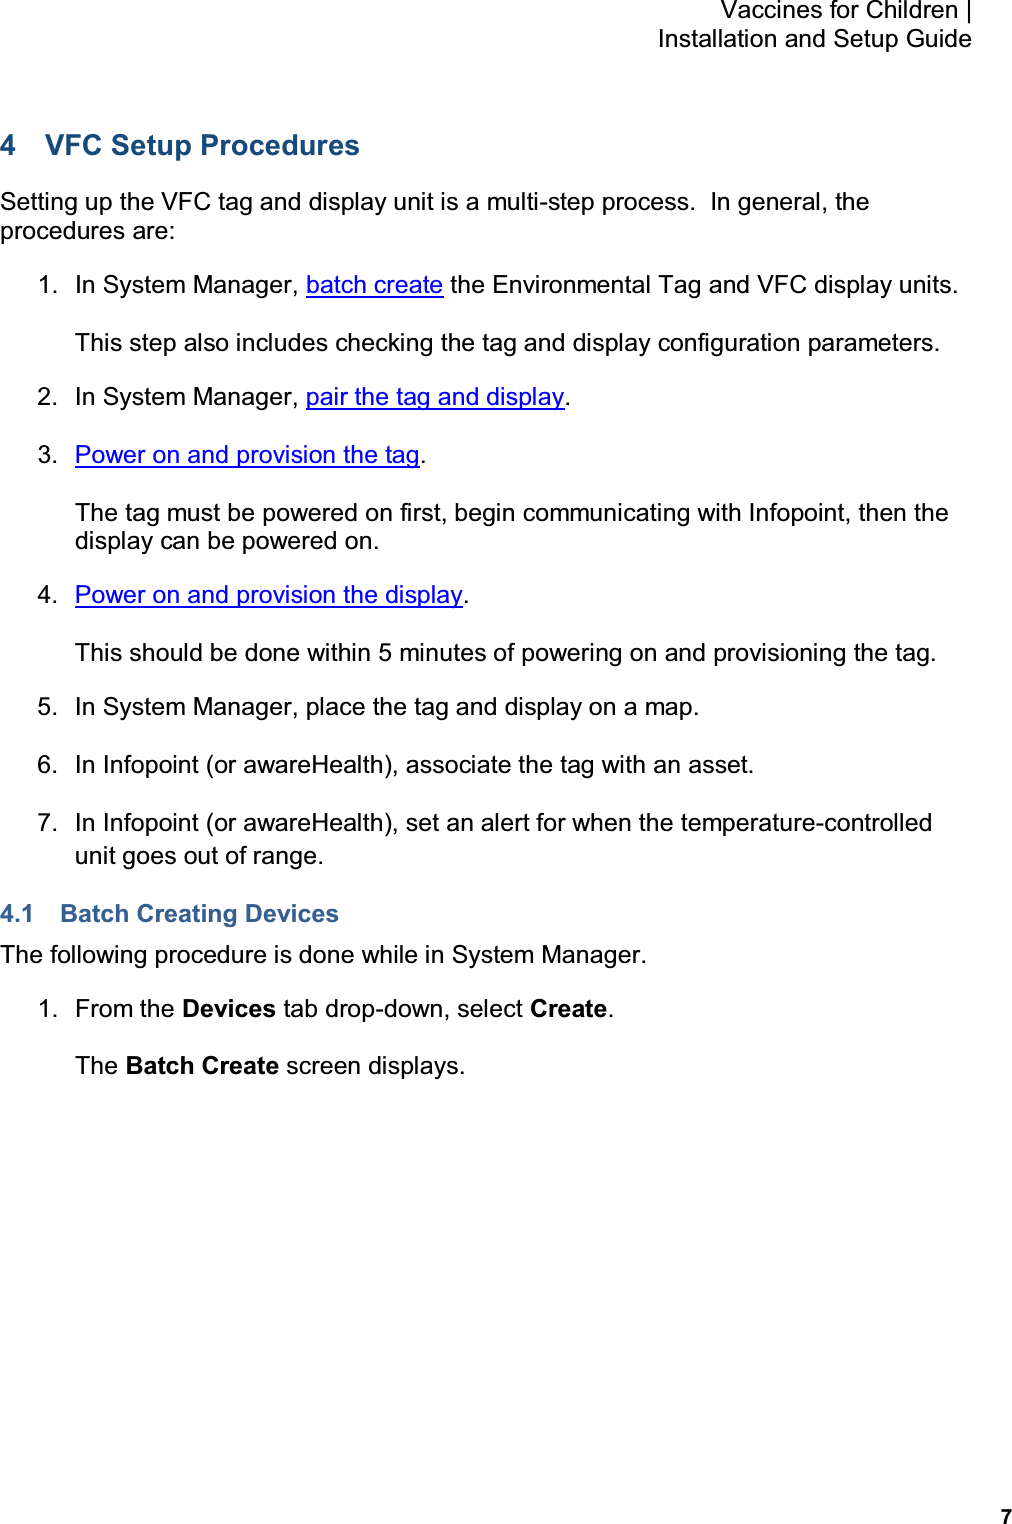 7 Vaccines for Children    Installation and Setup Guide 4  VFC Setup Procedures Setting up the VFC tag and display unit is a multi-step process.  In general, the procedures are: 1.  In System Manager, batch create the Environmental Tag and VFC display units. This step also includes checking the tag and display configuration parameters. 2.  In System Manager, pair the tag and display. 3.  Power on and provision the tag. The tag must be powered on first, begin communicating with Infopoint, then the display can be powered on. 4.  Power on and provision the display. This should be done within 5 minutes of powering on and provisioning the tag. 5.  In System Manager, place the tag and display on a map. 6.  In Infopoint (or awareHealth), associate the tag with an asset. 7.  In Infopoint (or awareHealth), set an alert for when the temperature-controlled unit goes out of range. 4.1  Batch Creating Devices The following procedure is done while in System Manager. 1.  From the Devices tab drop-down, select Create. The Batch Create screen displays.